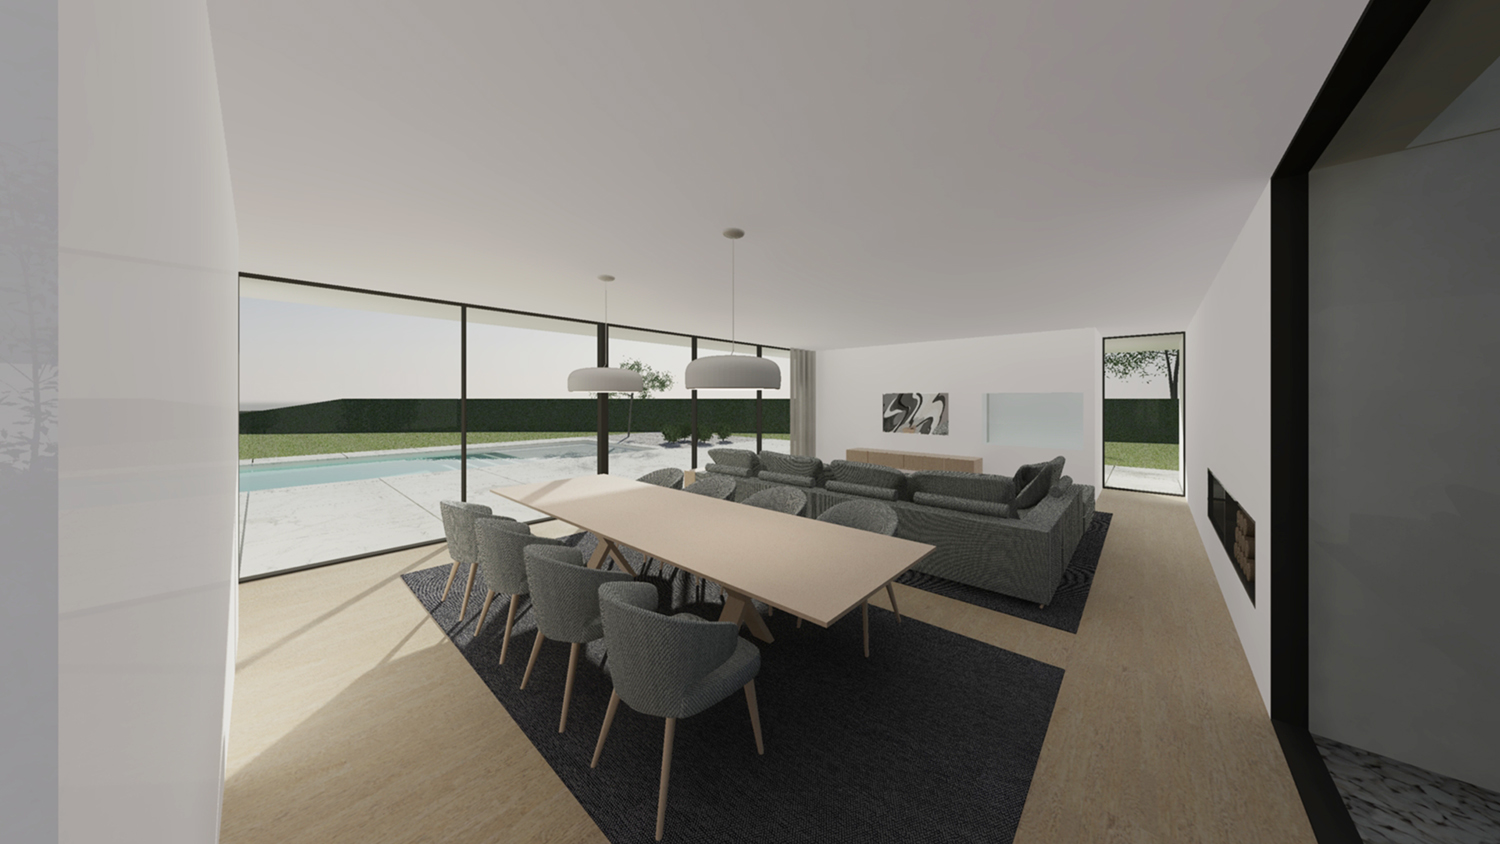 view from the living room Raulino Silva Architect